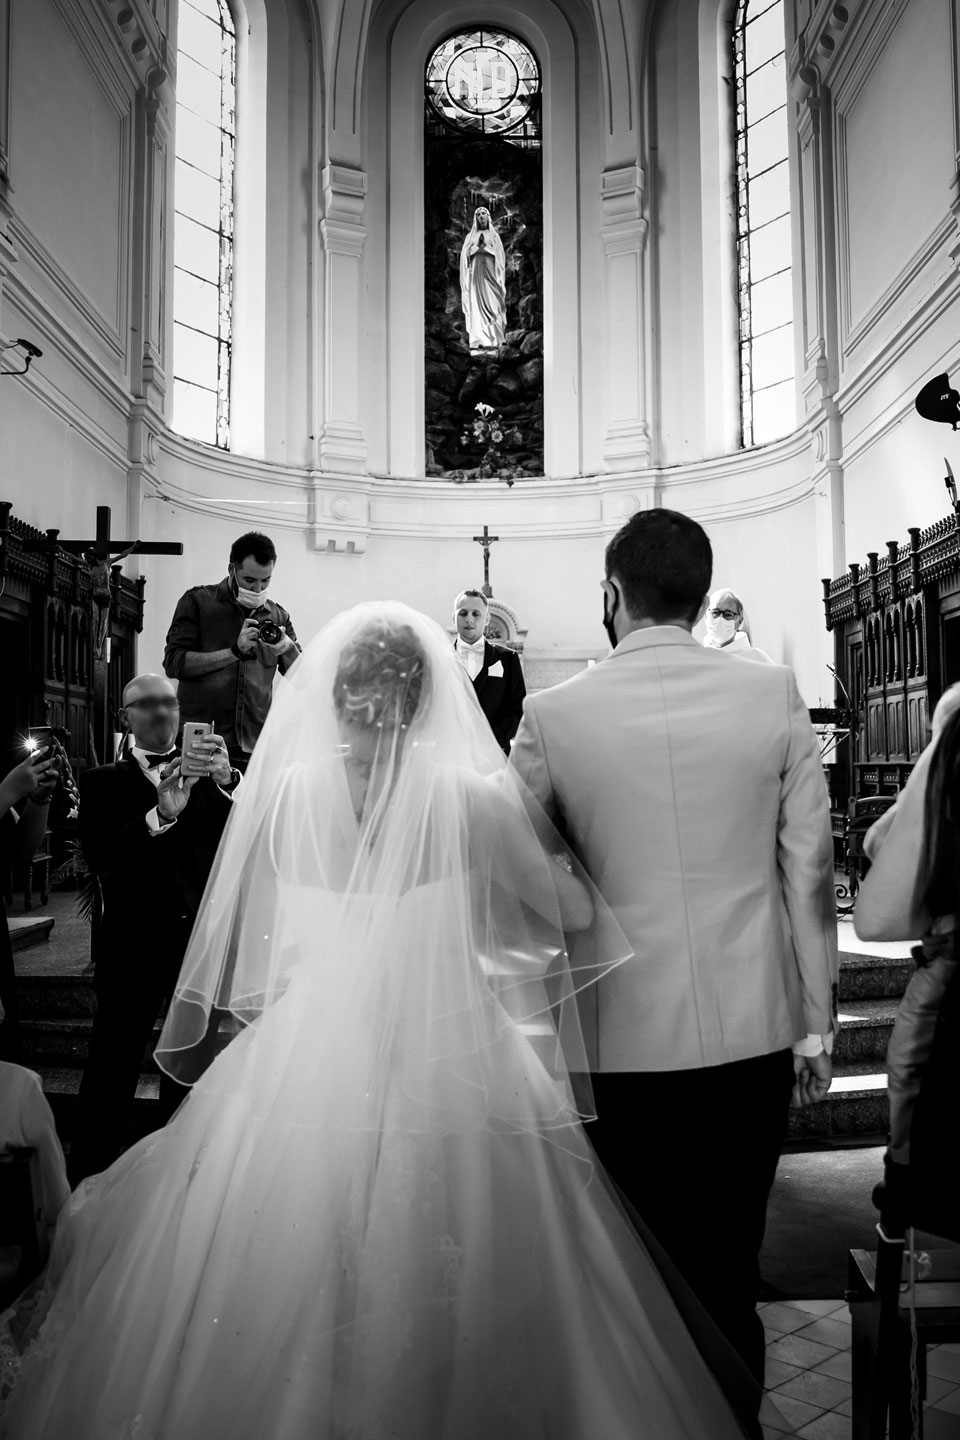 20200912-mariage-ophelie-alexandre-022